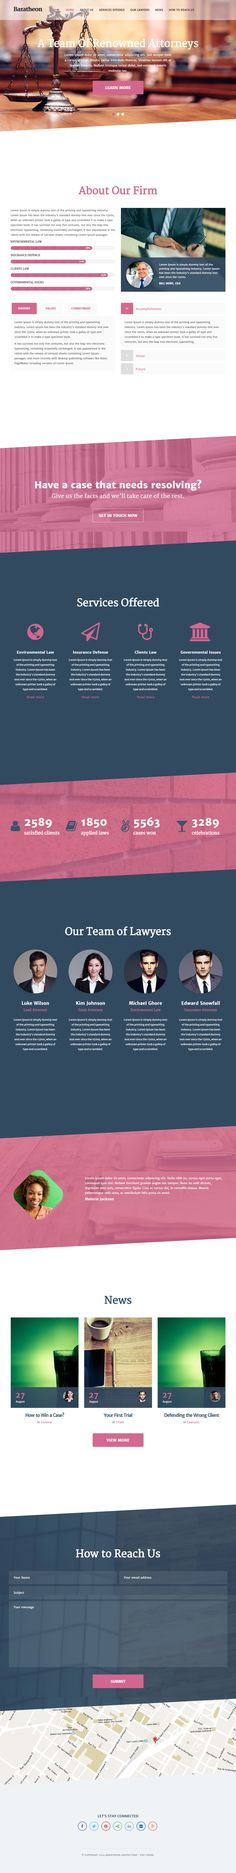 Baratheon is Premium Responsive HTML5 Lawyers Template. Retina Ready. Parallax Scrolling. One Page. Bootstrap 3. Flat Design. http://www.responsivemiracle.com/cms/baratheon-premium-responsive-one-page-law-firm-html5-template/